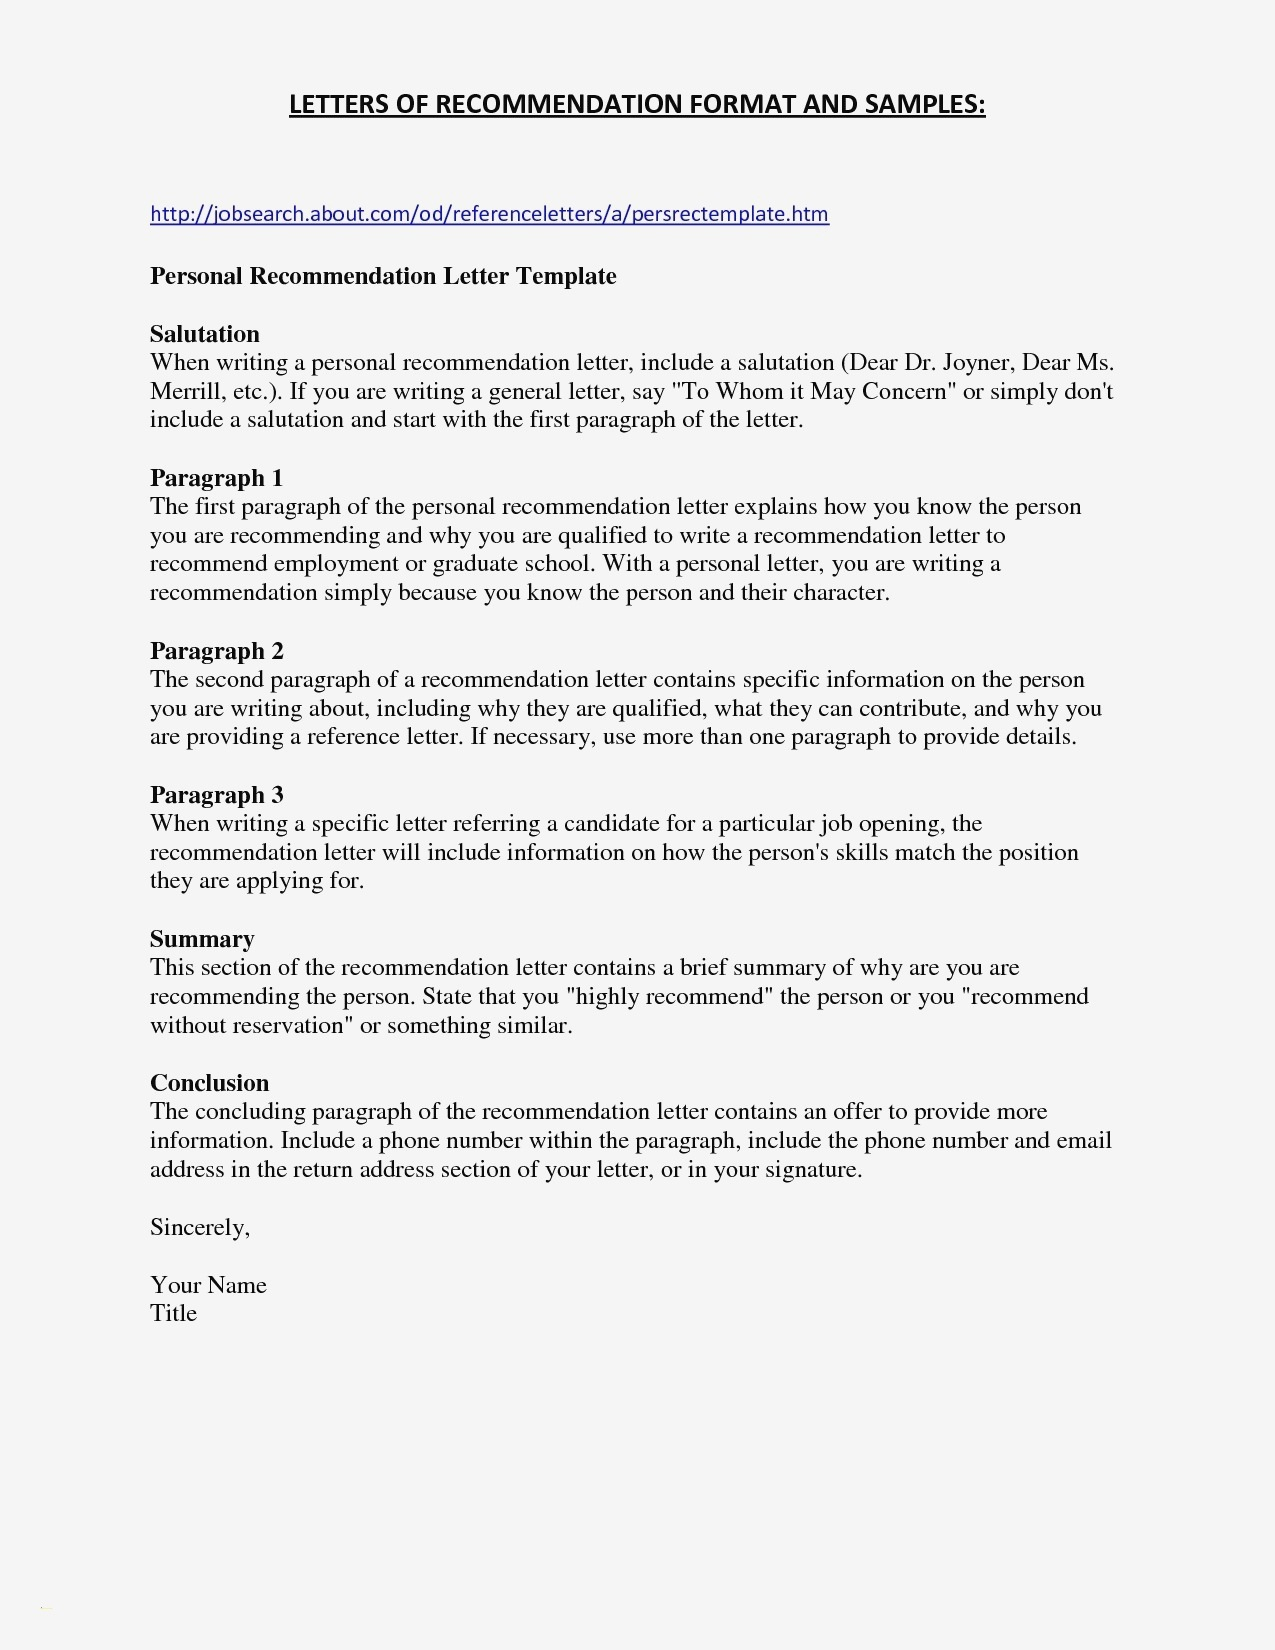 business school resume template example-Mba Application Resume Template New the Proper Harvard Business School Resume Template Visit to Reads 13-f